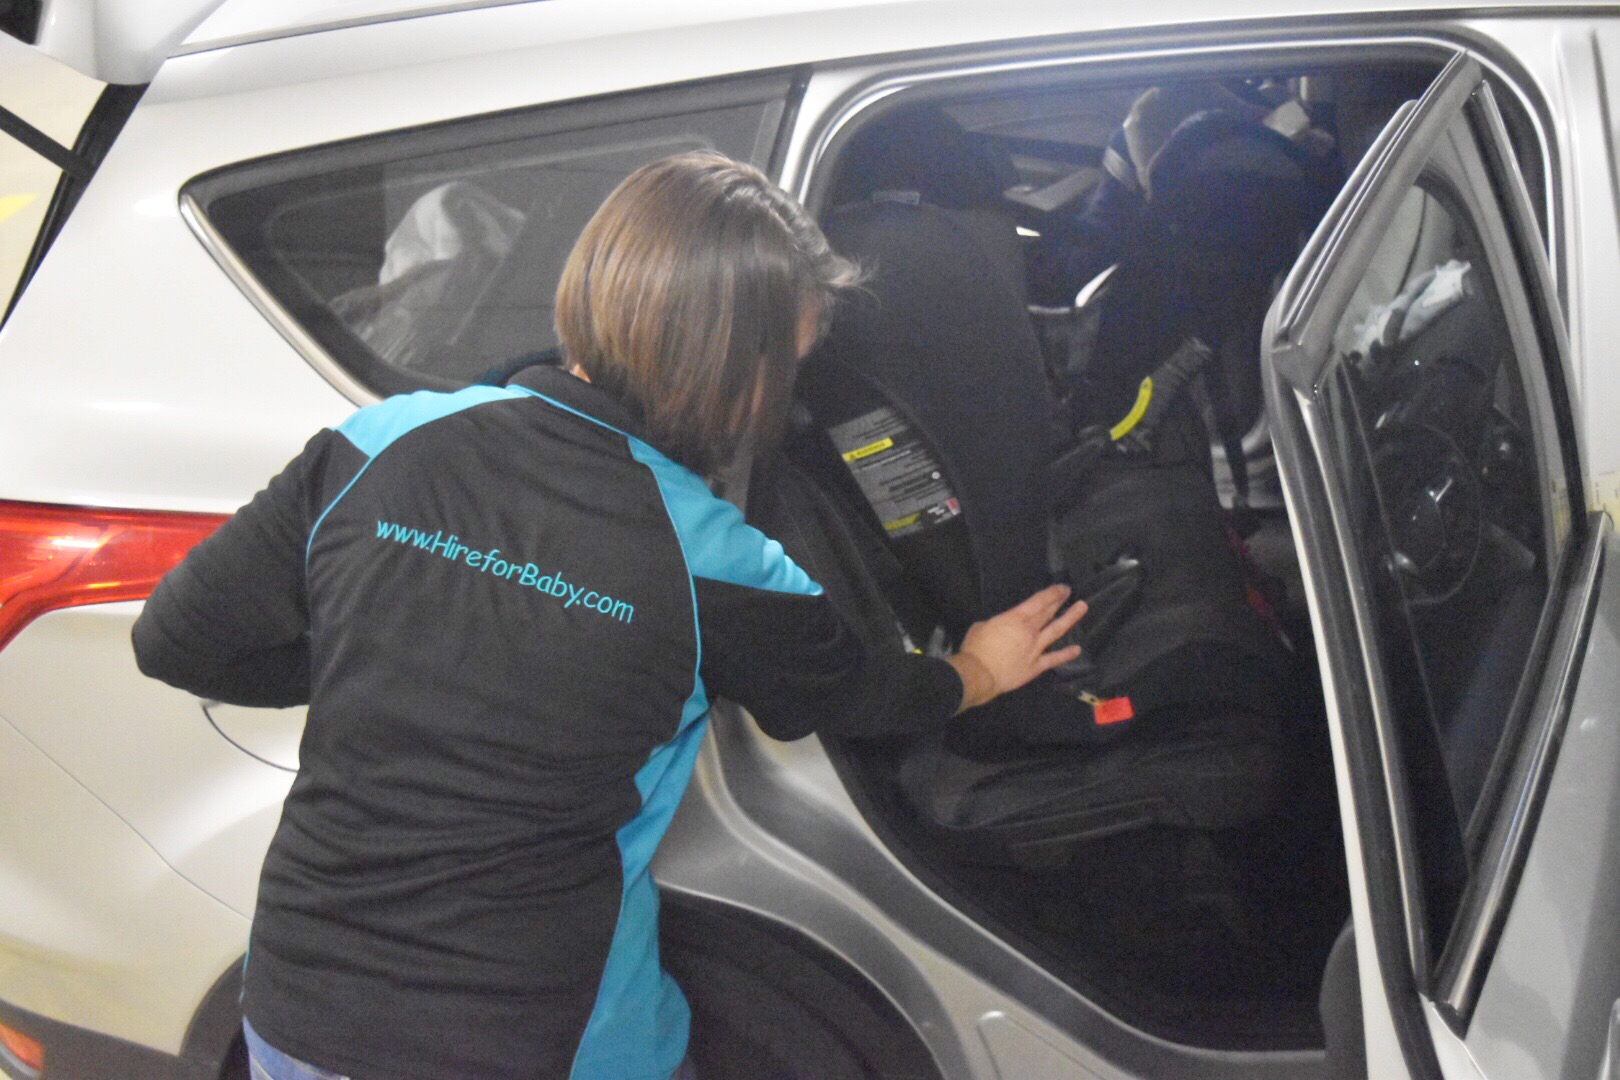 Baby Car Seat Fitting Service Review Of Hire For Baby Restraint Fitting Service Child